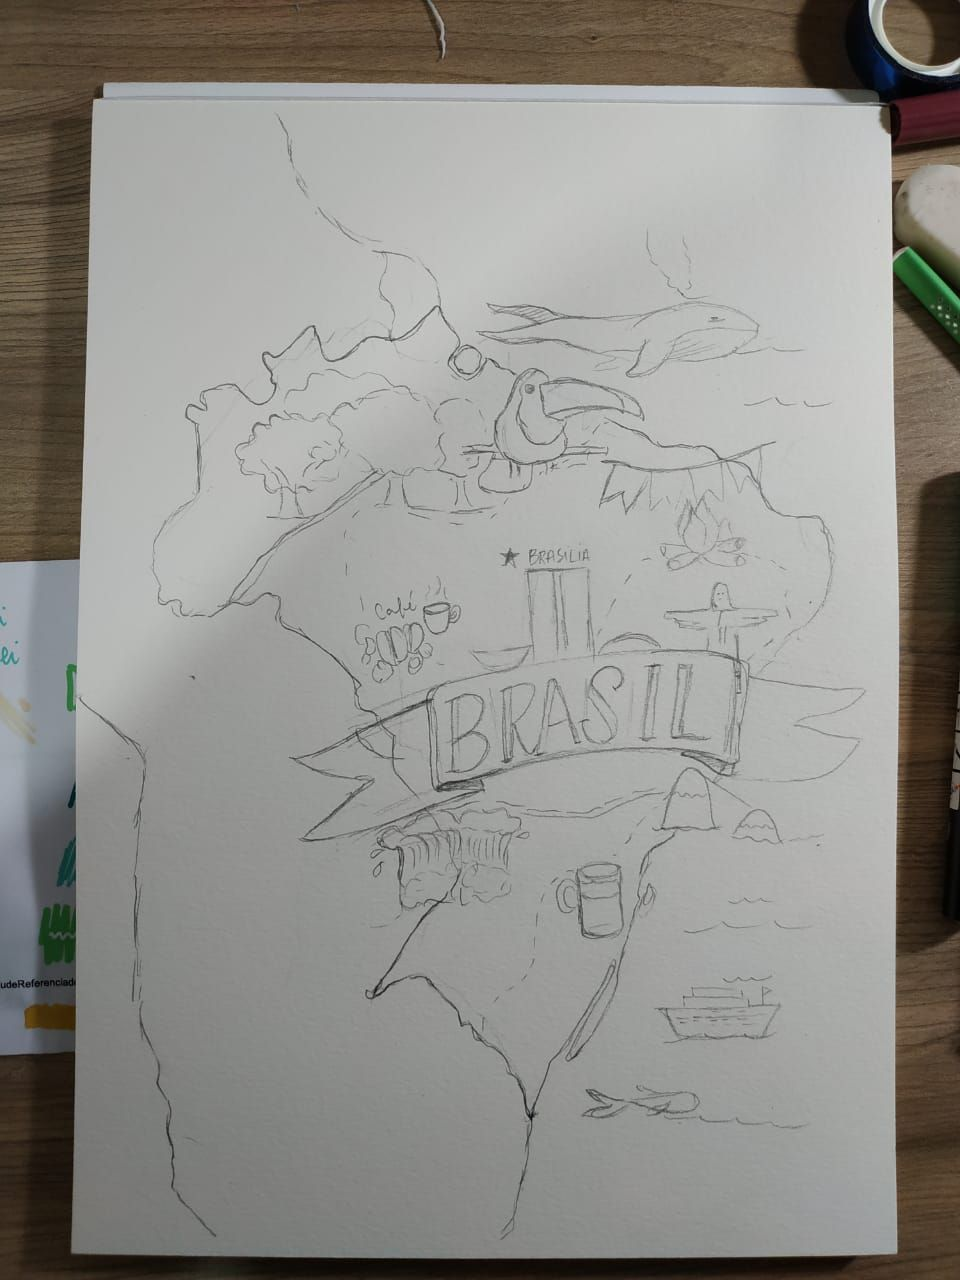 Brazil map - image 1 - student project